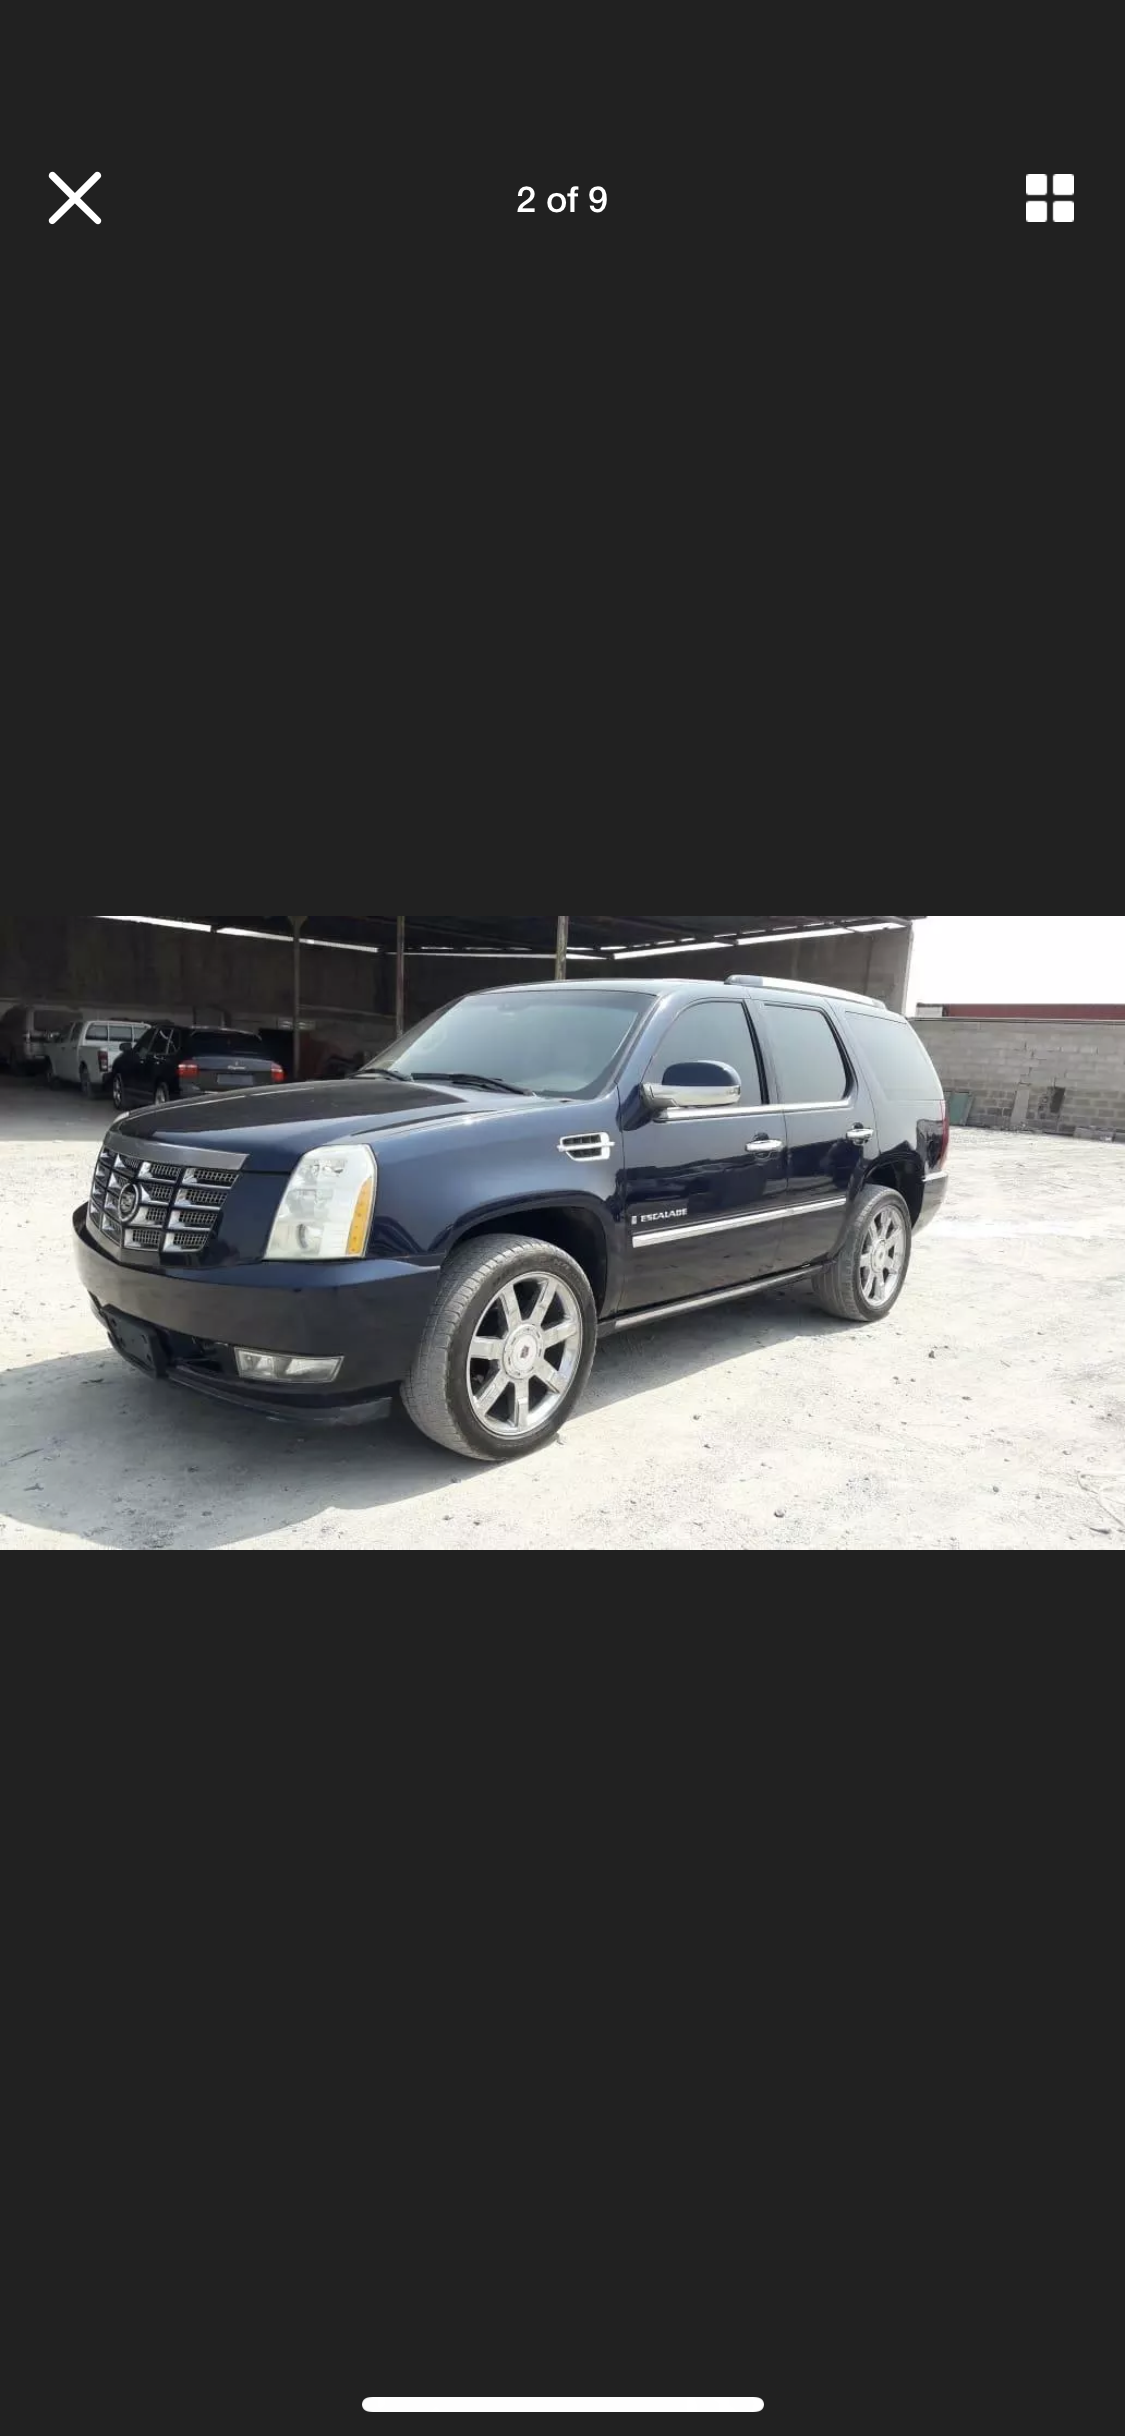 2008 CADILLAC ESCALADE 6.2 LHD LEFT HAND DRIVE FRESH IMPORT LOW M For Sale (picture 1 of 6)